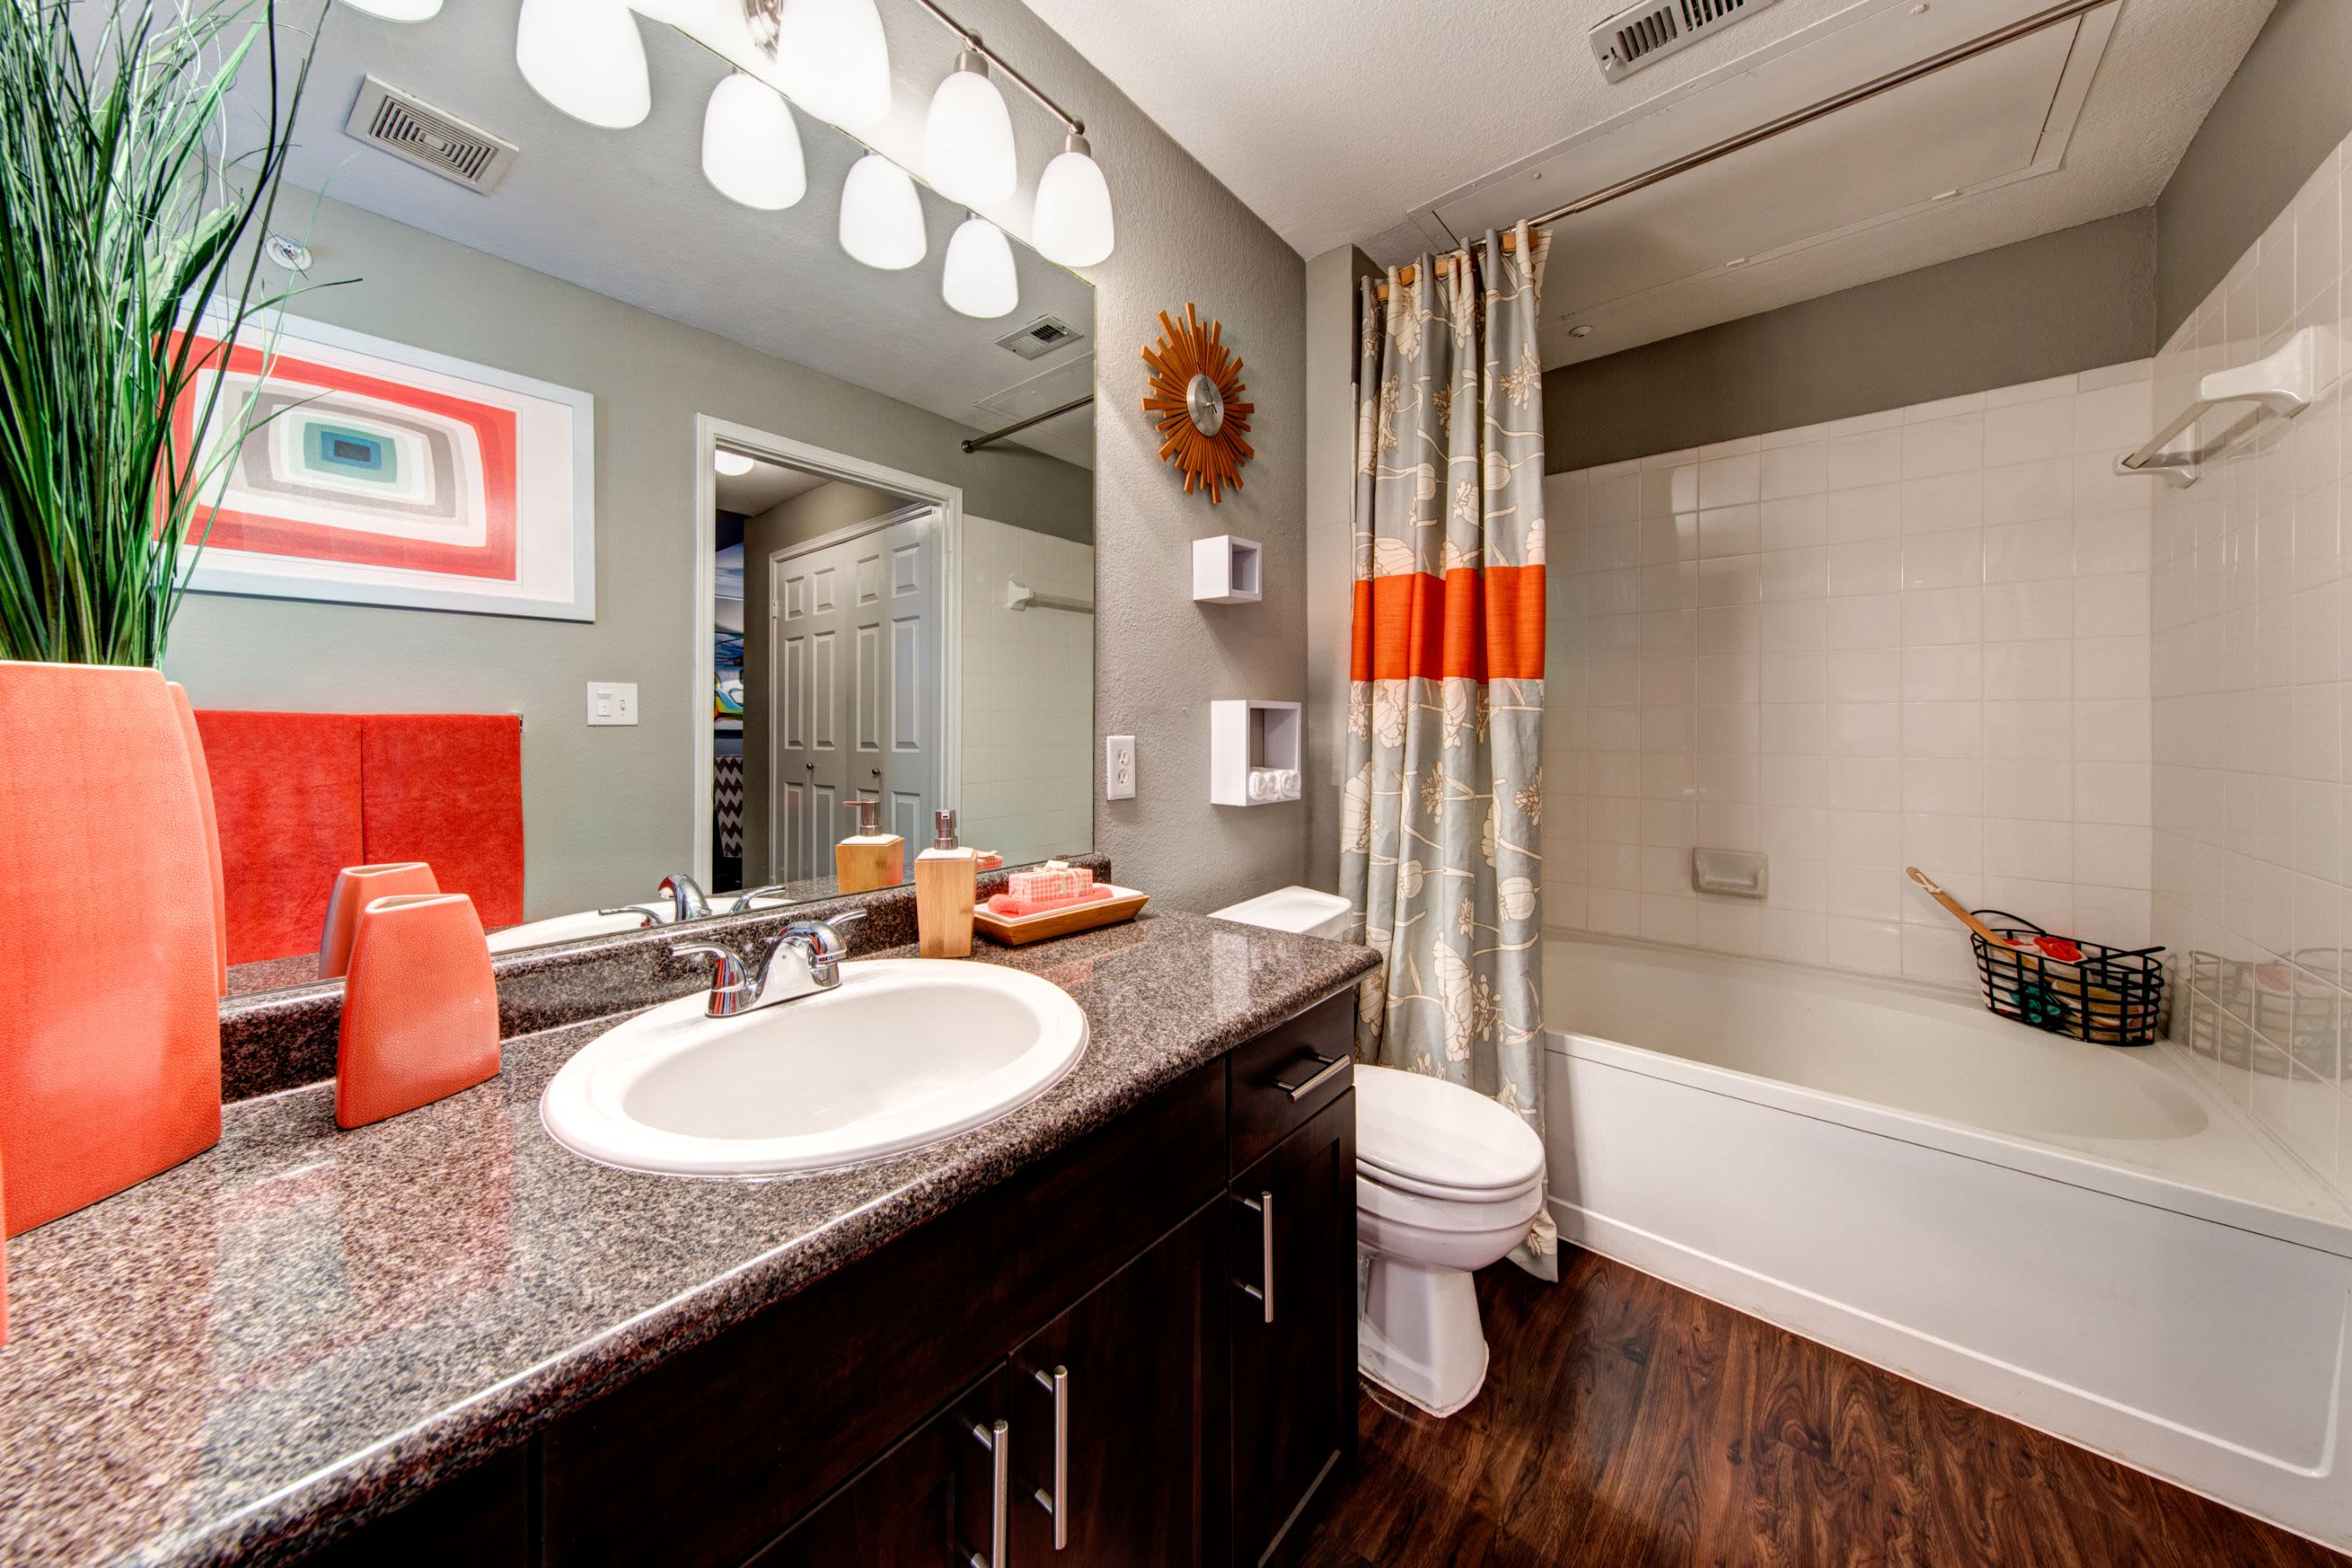 Bathroom with granite style counters at Marquis on Gaston in Dallas, Texas